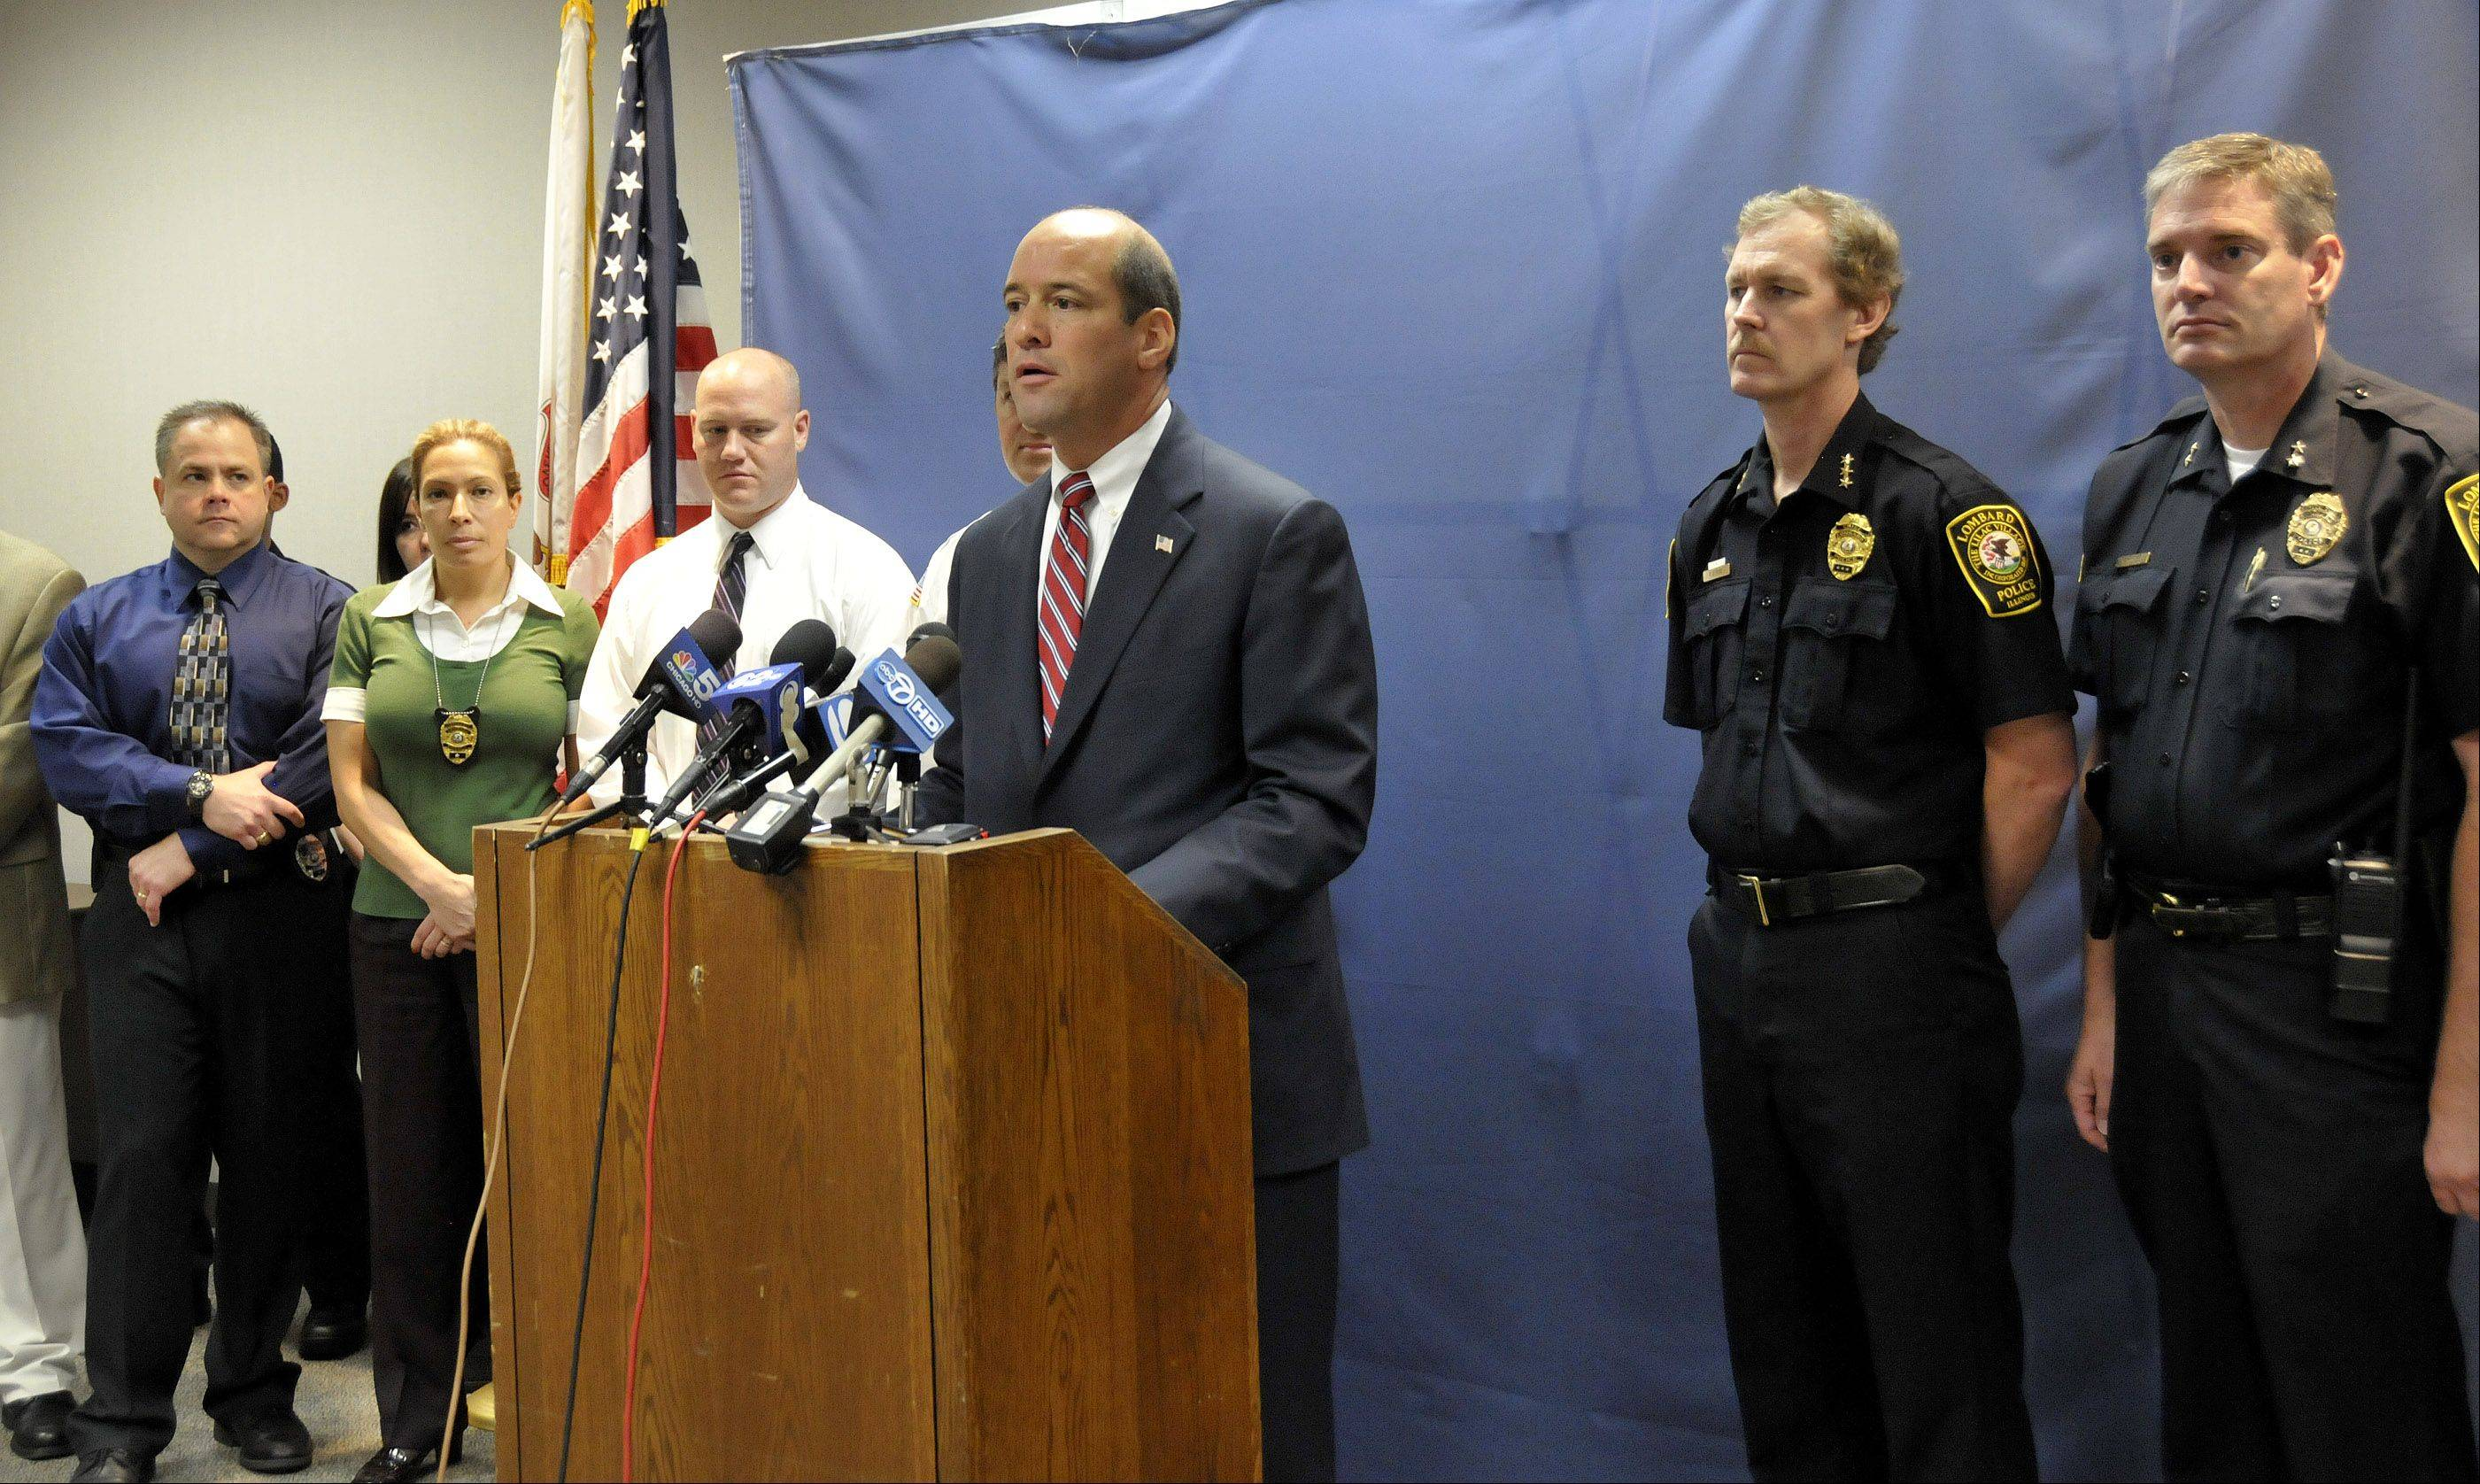 DuPage County State's Attorney Robert Berlin discusses charges against a the Villa Park man charged with the first degree murder of 24-year-old Paula Morgan of Lombard.